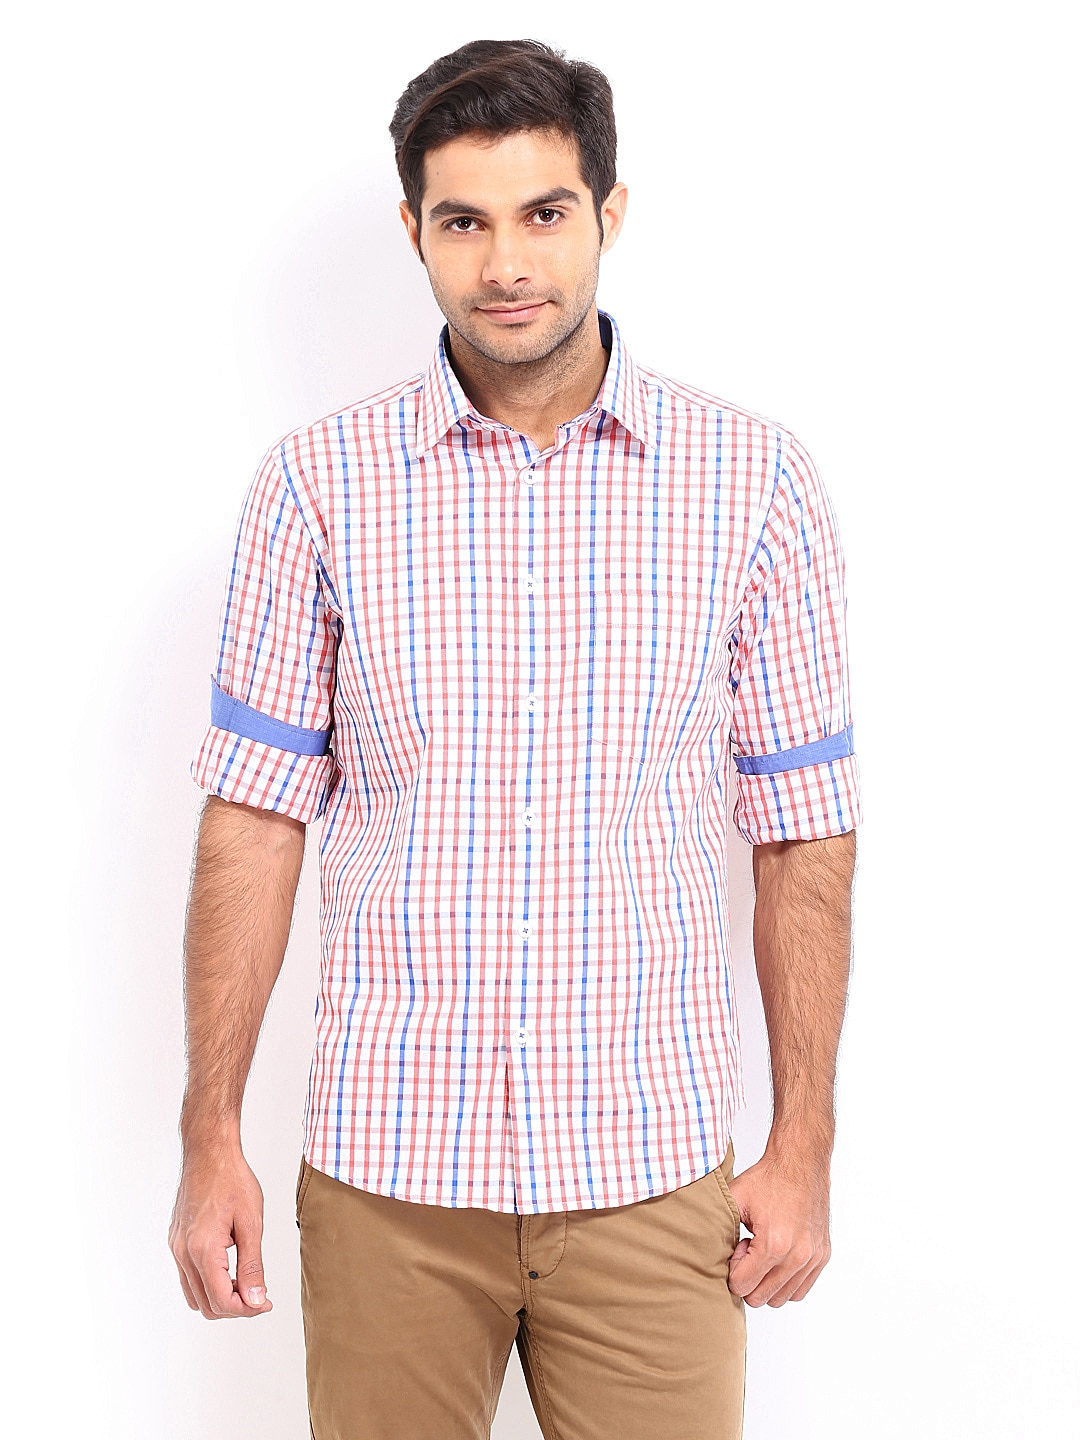 Oxemberg Oxemberg Men White & Red Checked Slim Fit Casual Shirt (Multicolor)